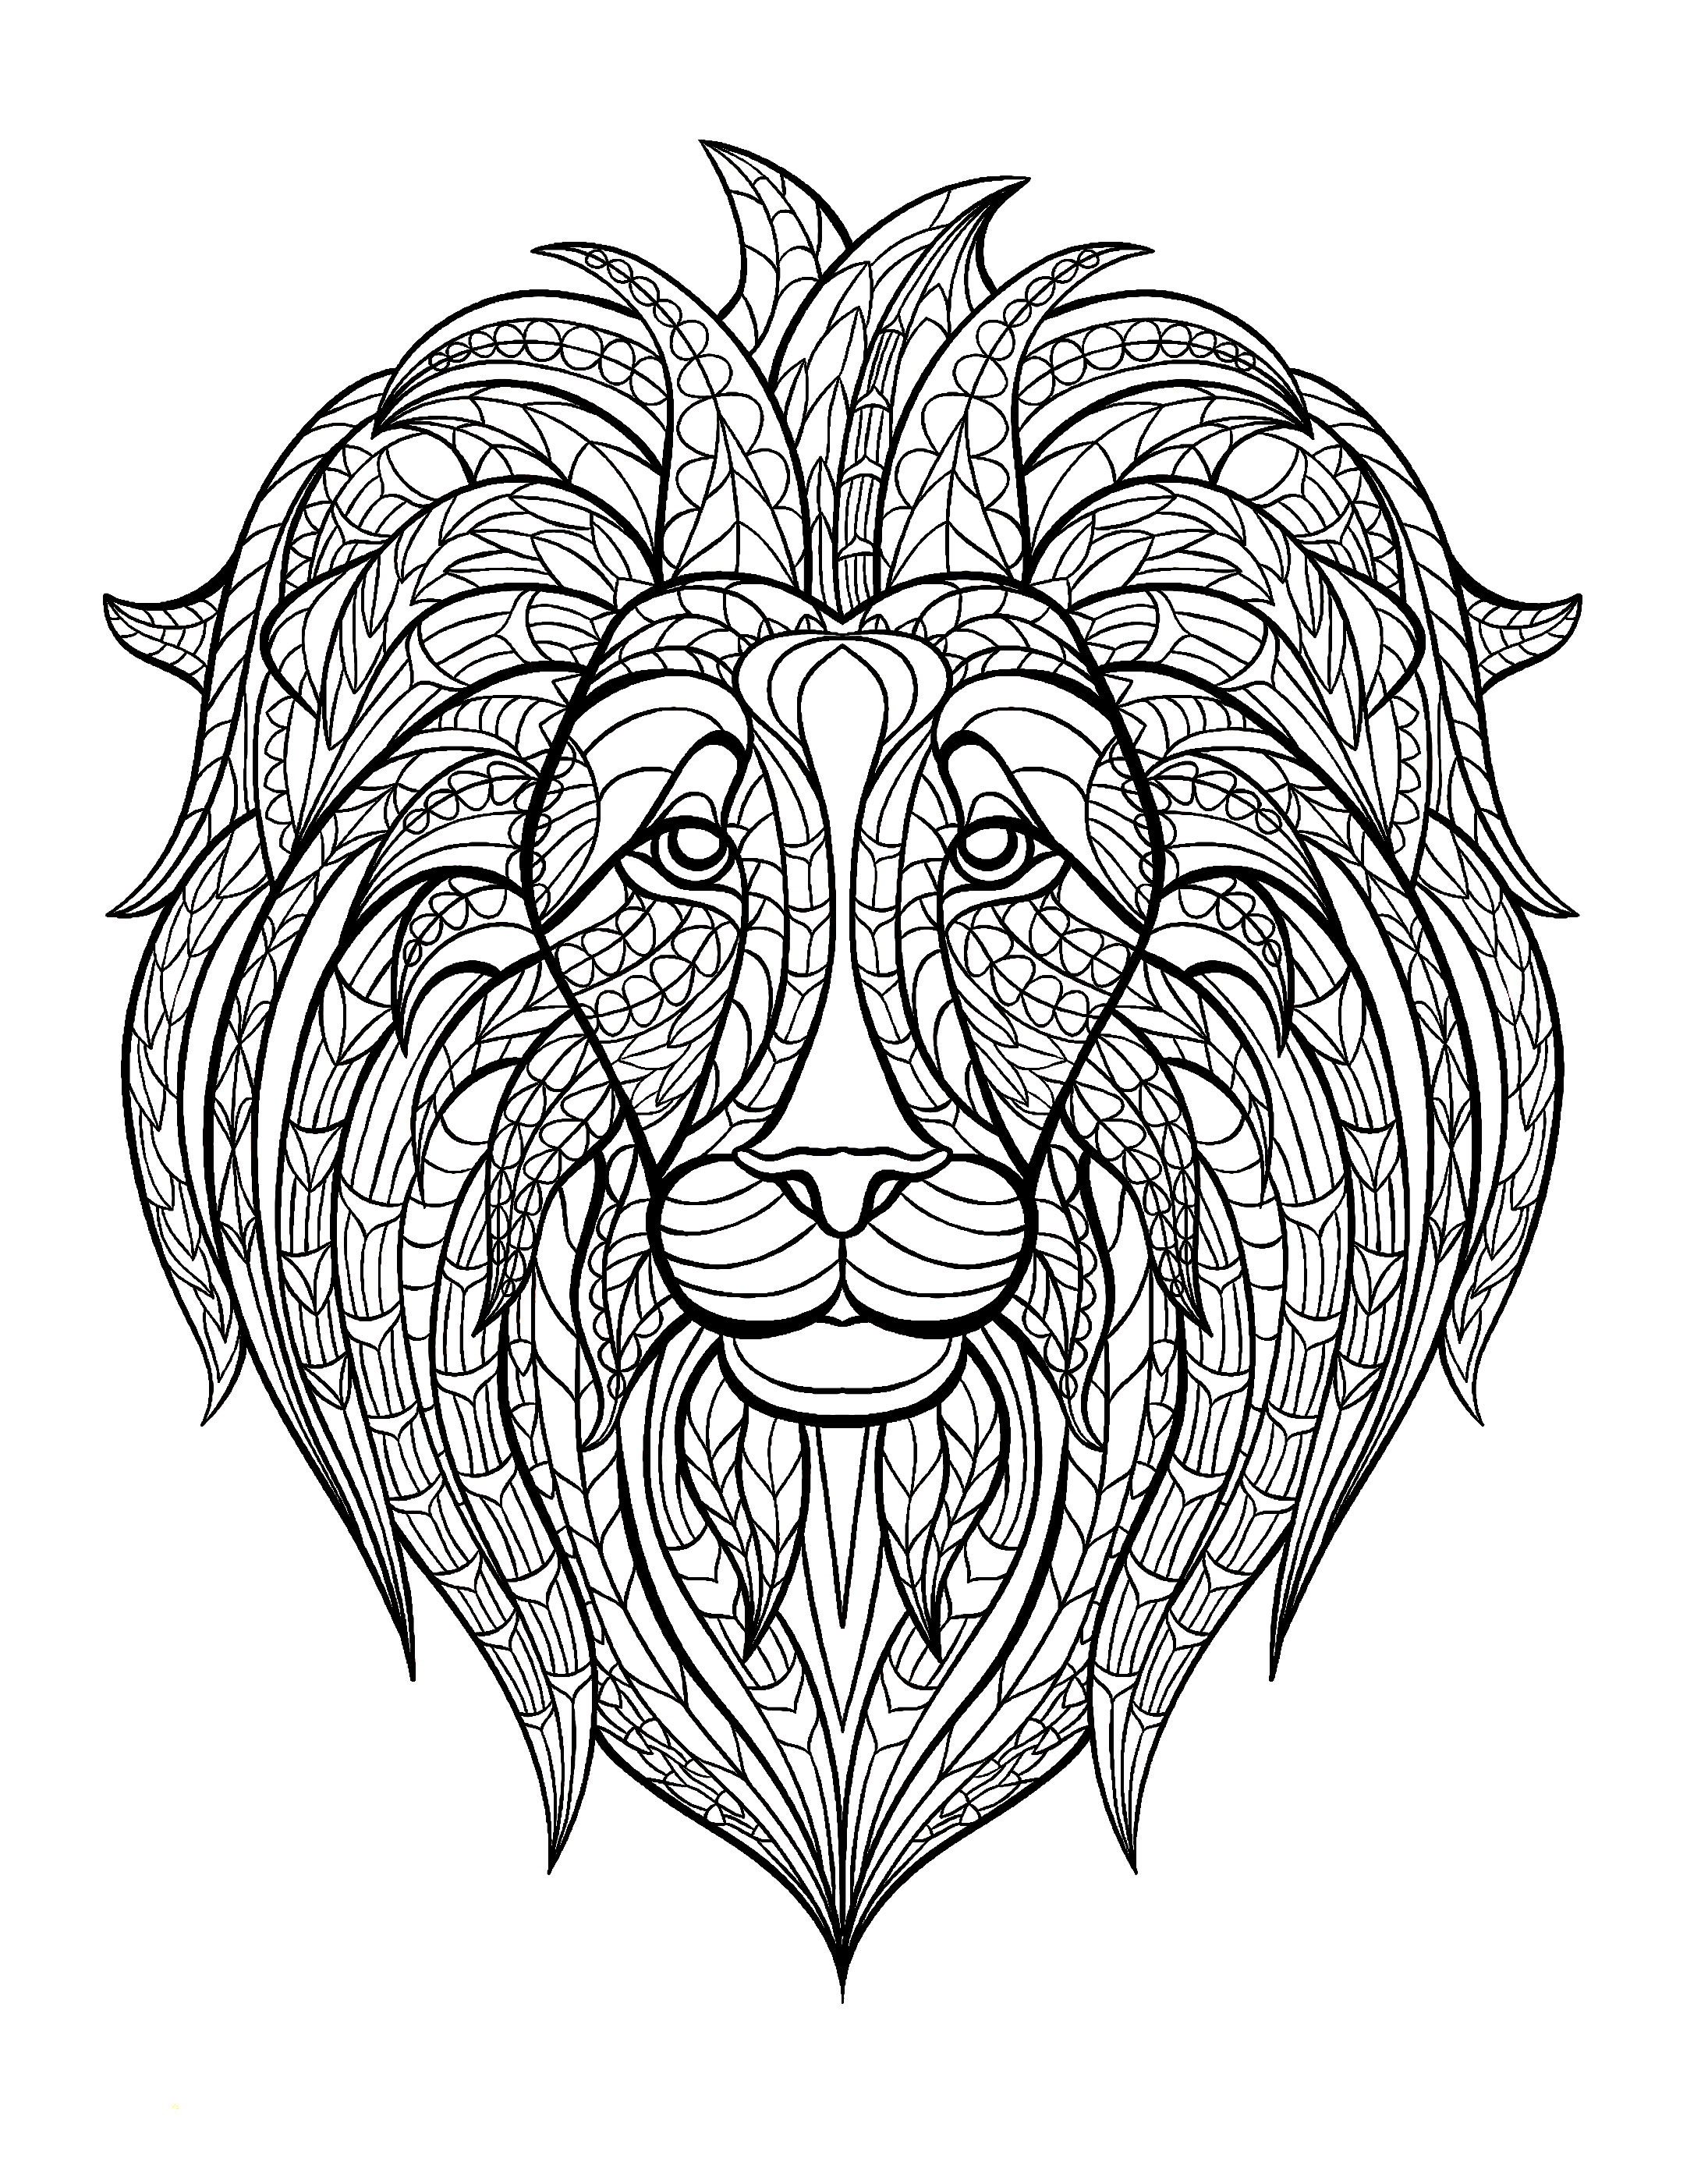 Animal Adult Coloring Book Giveaway on Natural Blaze!Lion Head Coloring Pages For Adults